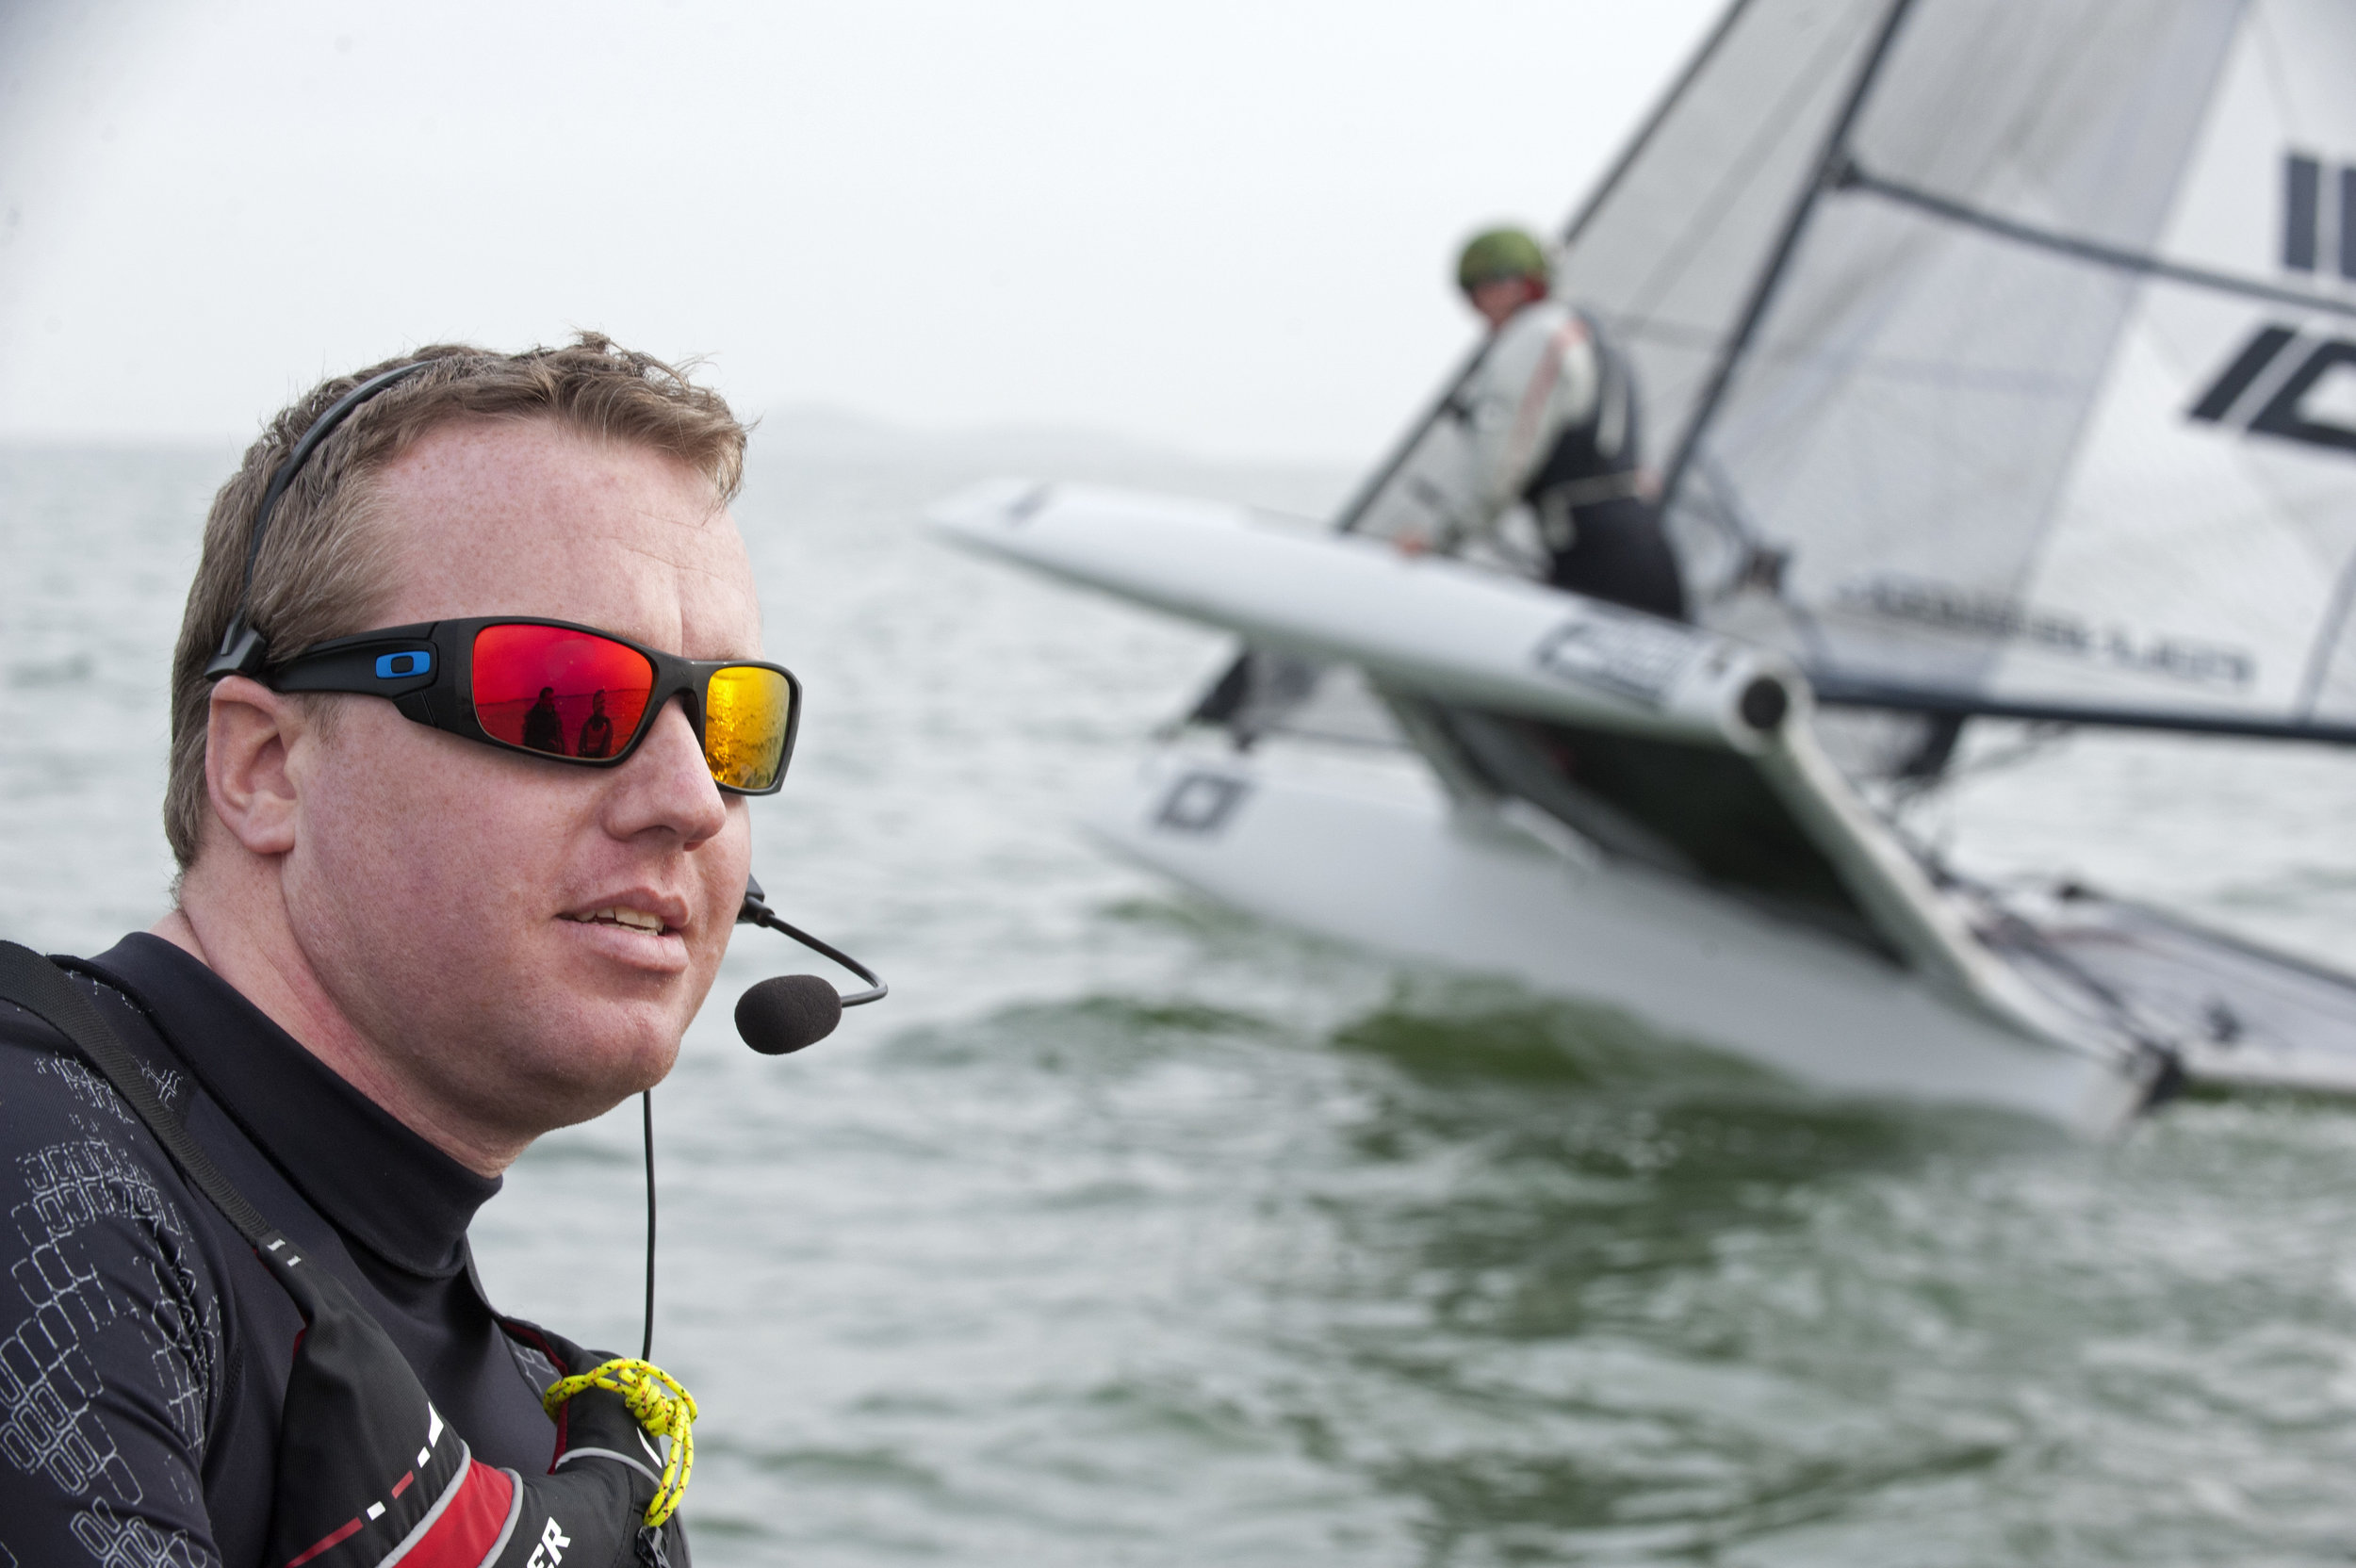 Get an introduction to Foiling 101 with expert coaches